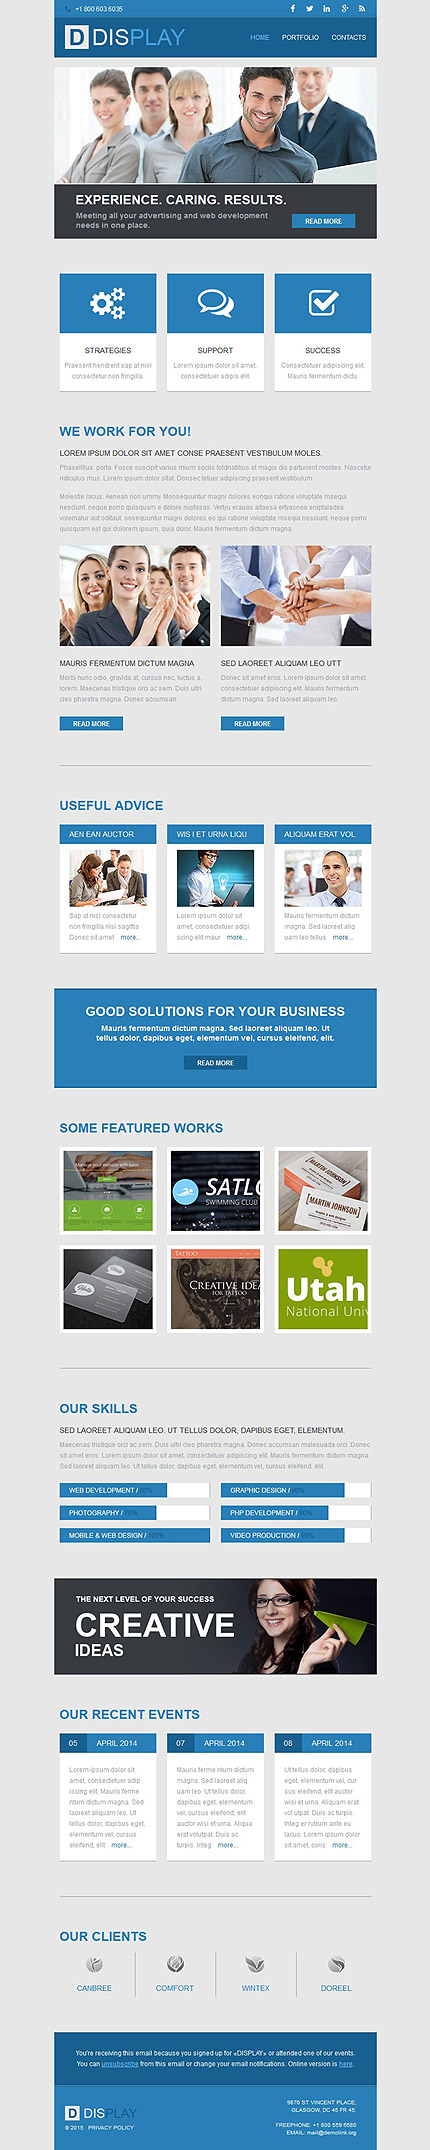 Template 52682 - Web Development Agency Responsive Newsletter in Blue and Gray